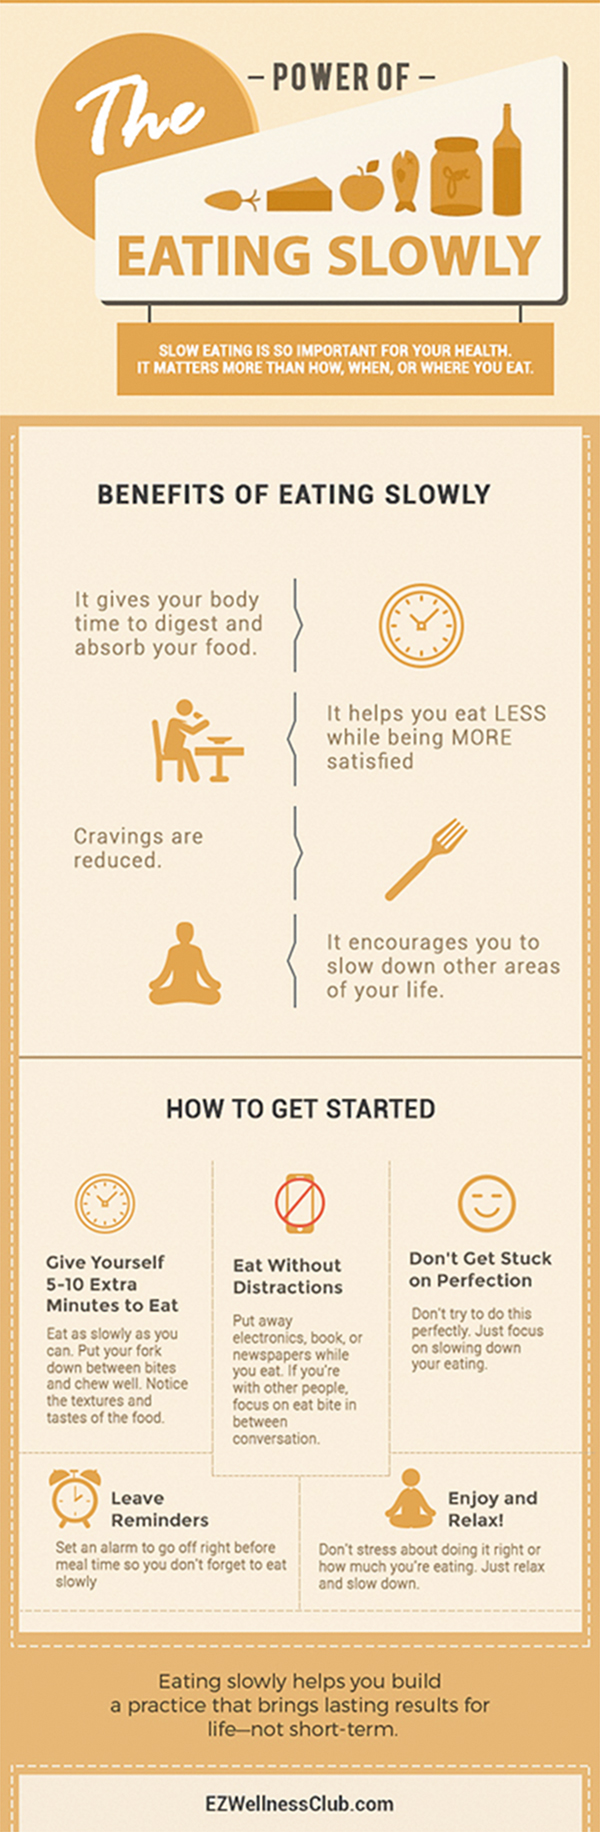 The Power of Eating Slowly Infographic